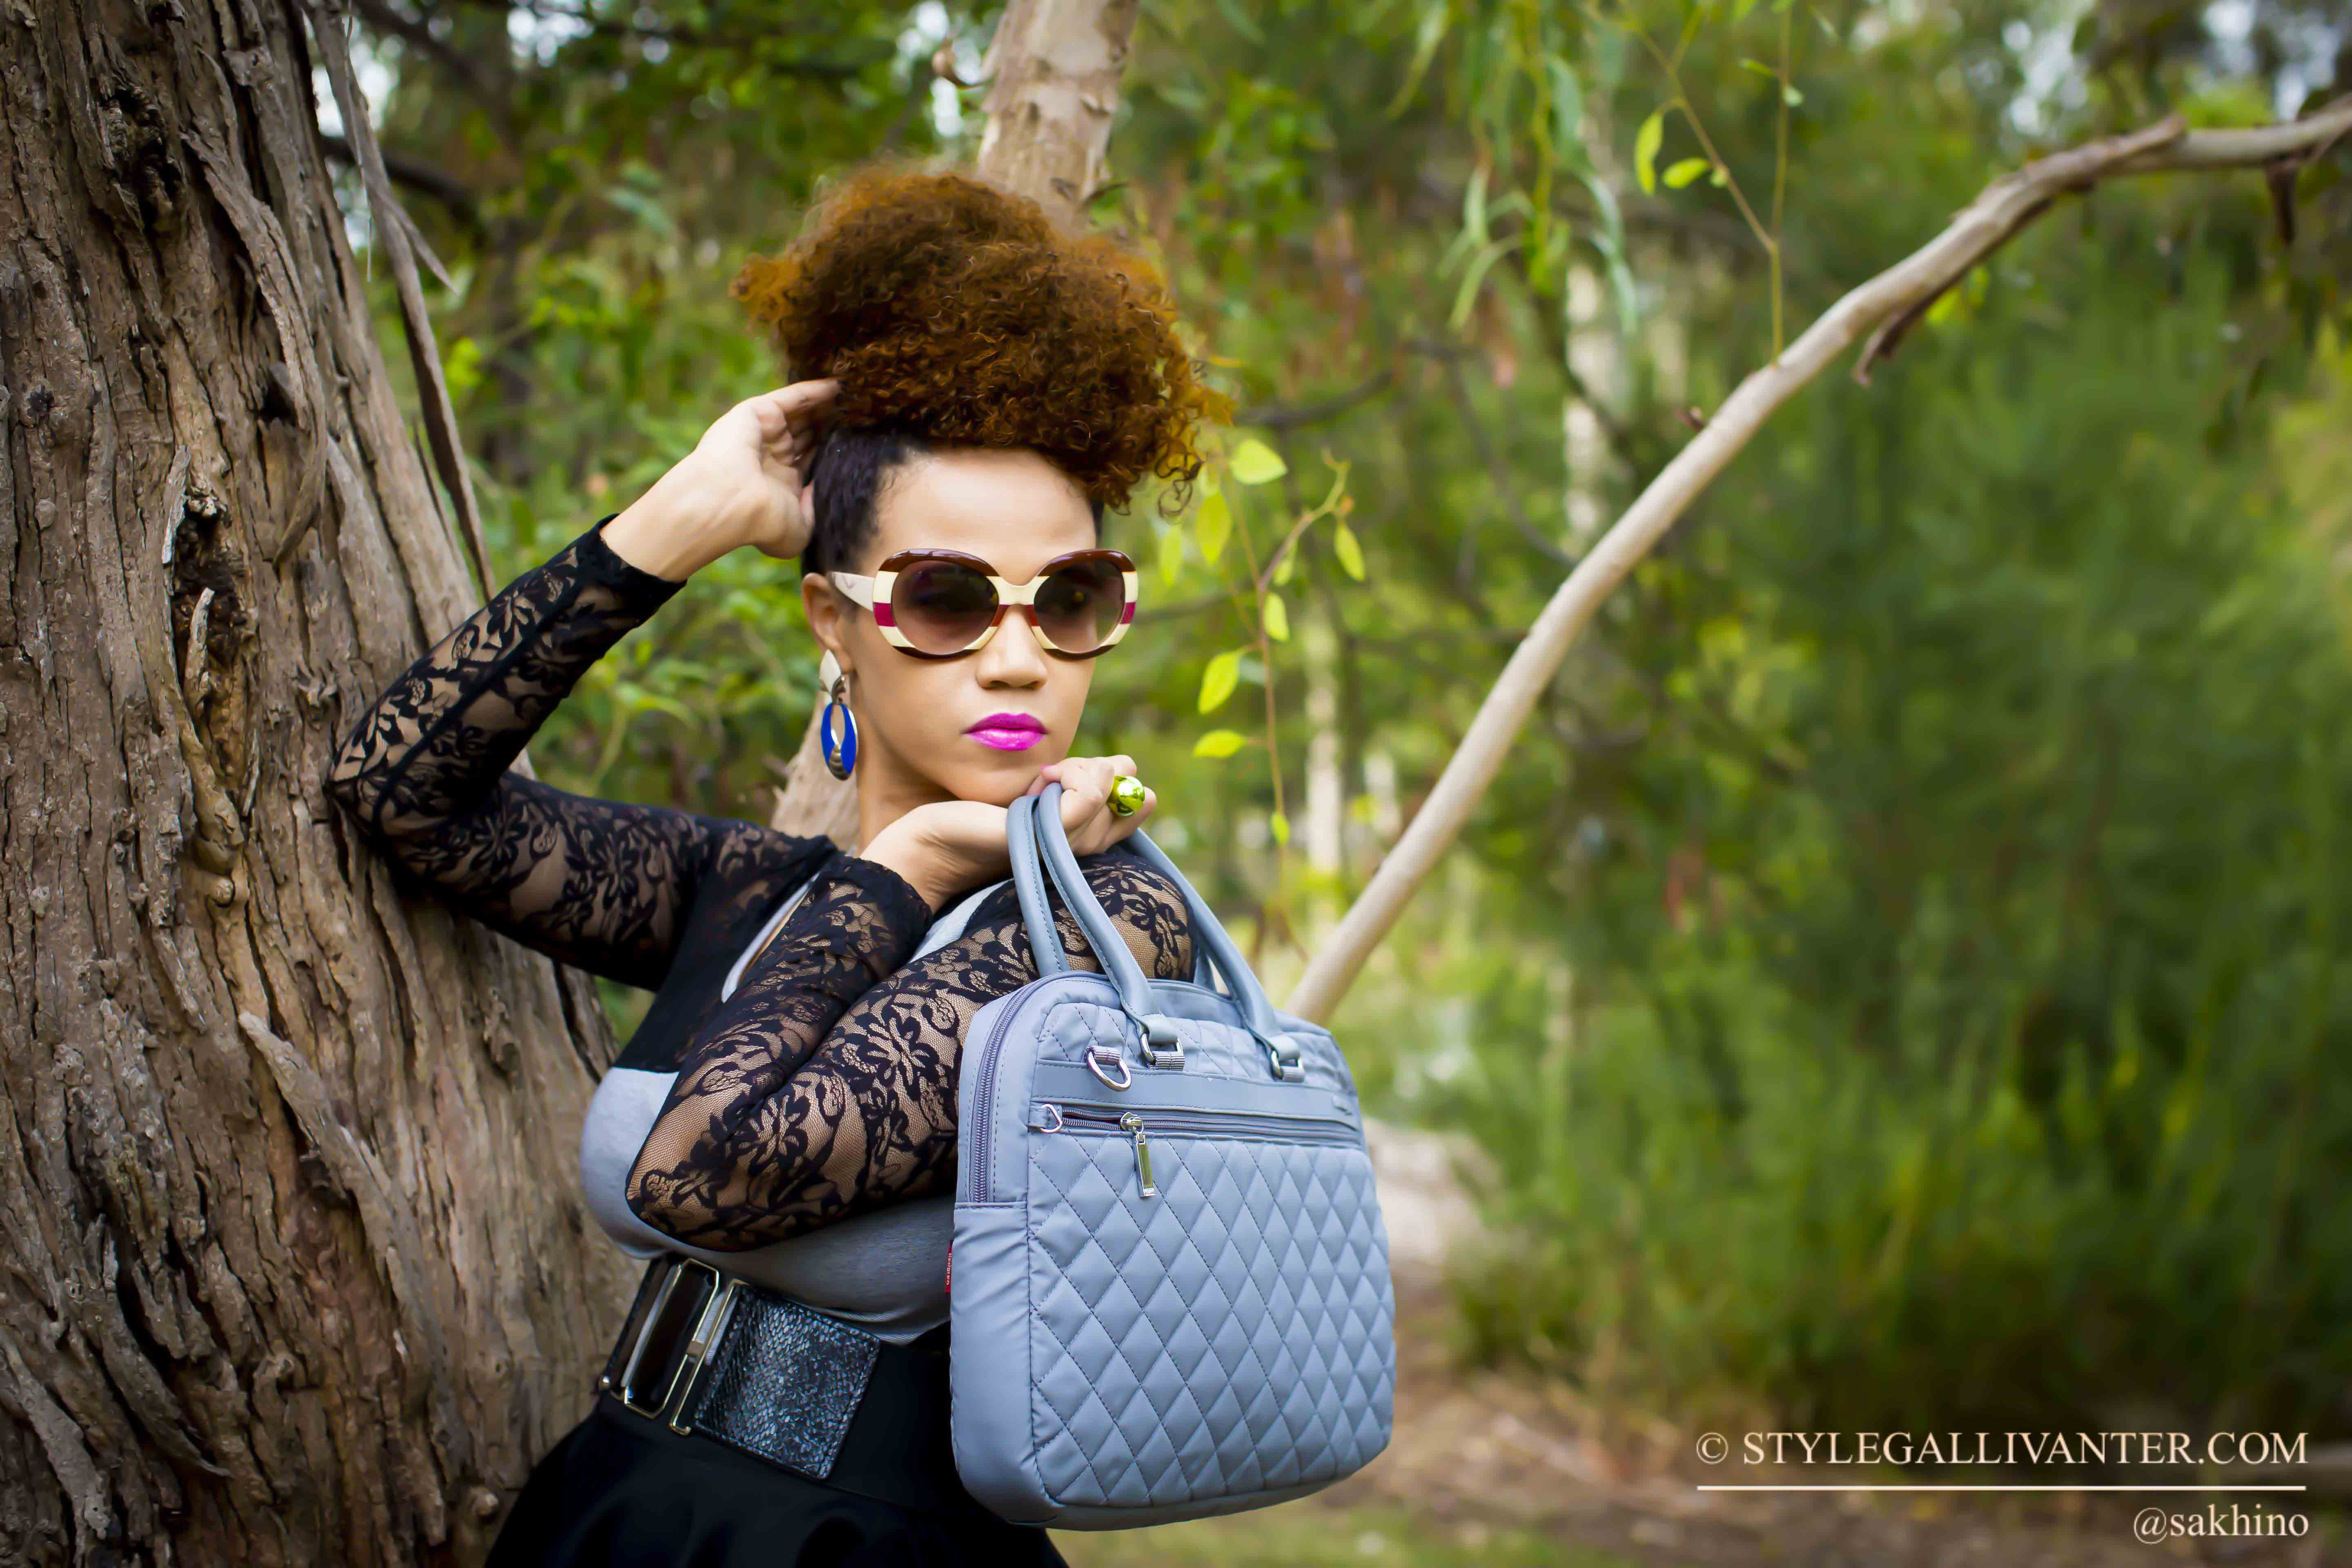 mirandaSAKHINO-copyright-2015_not-to-be-used-without-permission_manolo-blahnik_hedgren-bags-2015_grey-hedgren_top-fashion-blogs-melbourne-2015_blogger-turned-designer-10